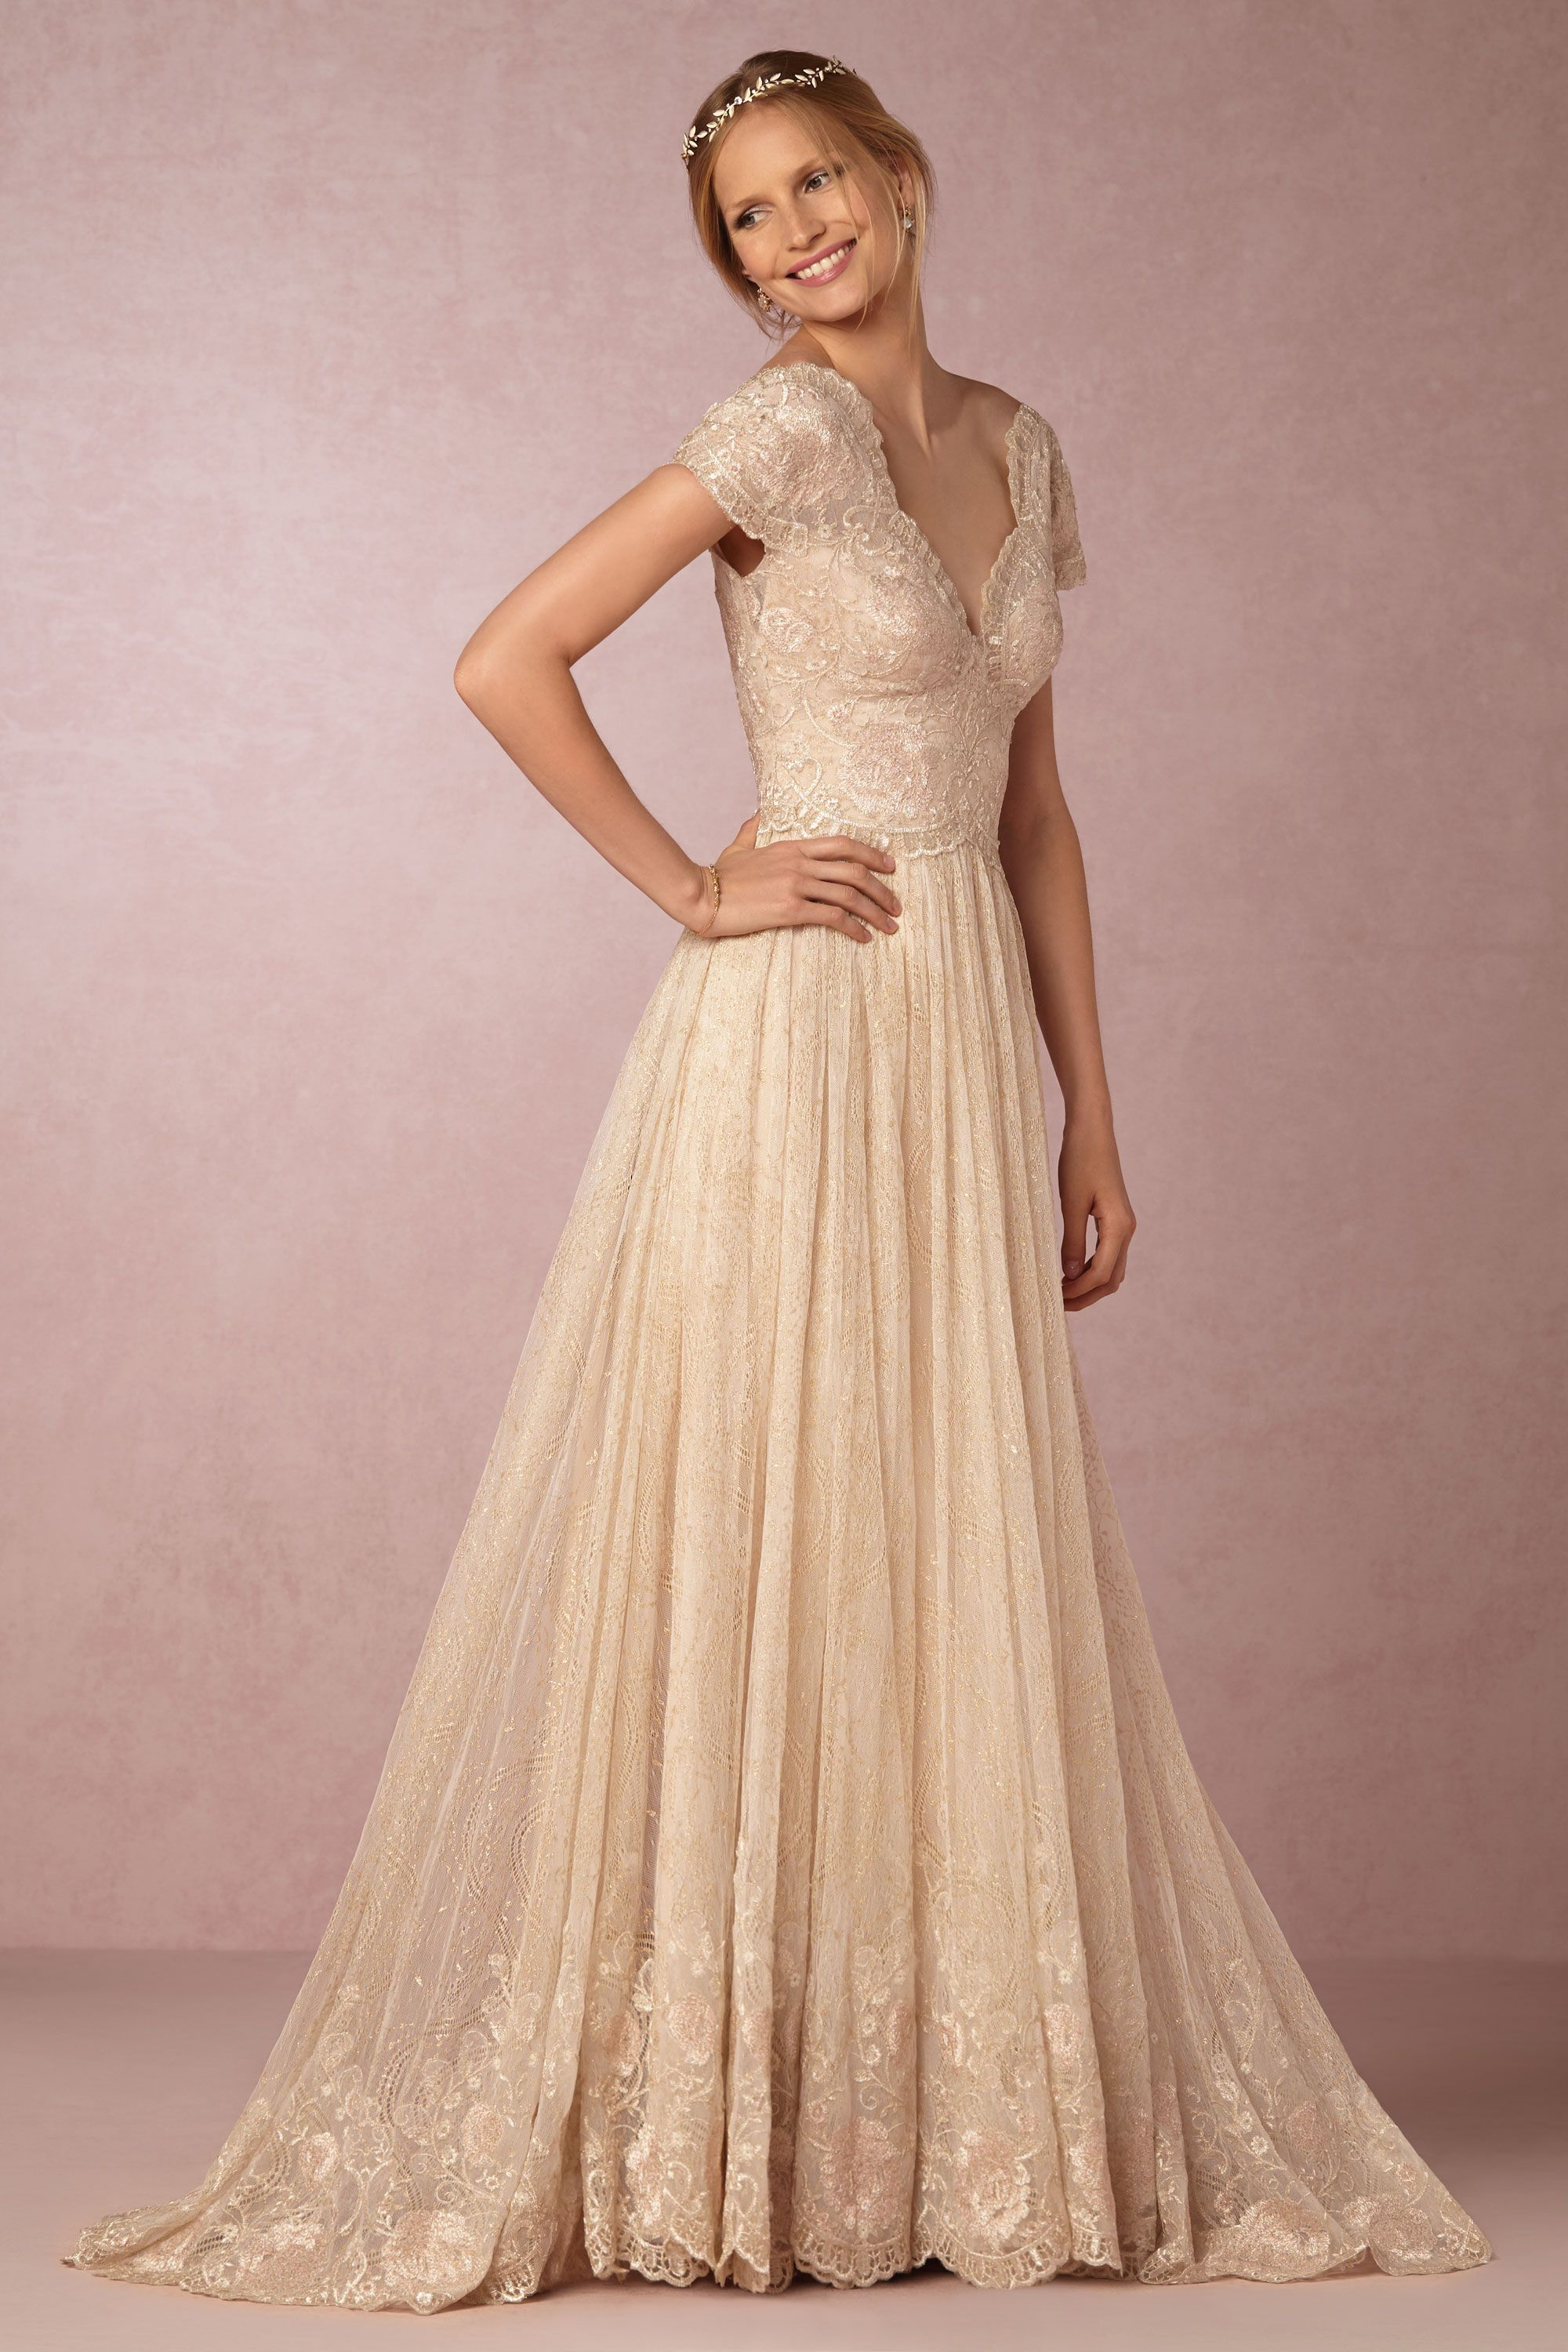 Short champagne wedding dresses  Kensington Gown from BHLDN Great gown for the season BHLDNwishes